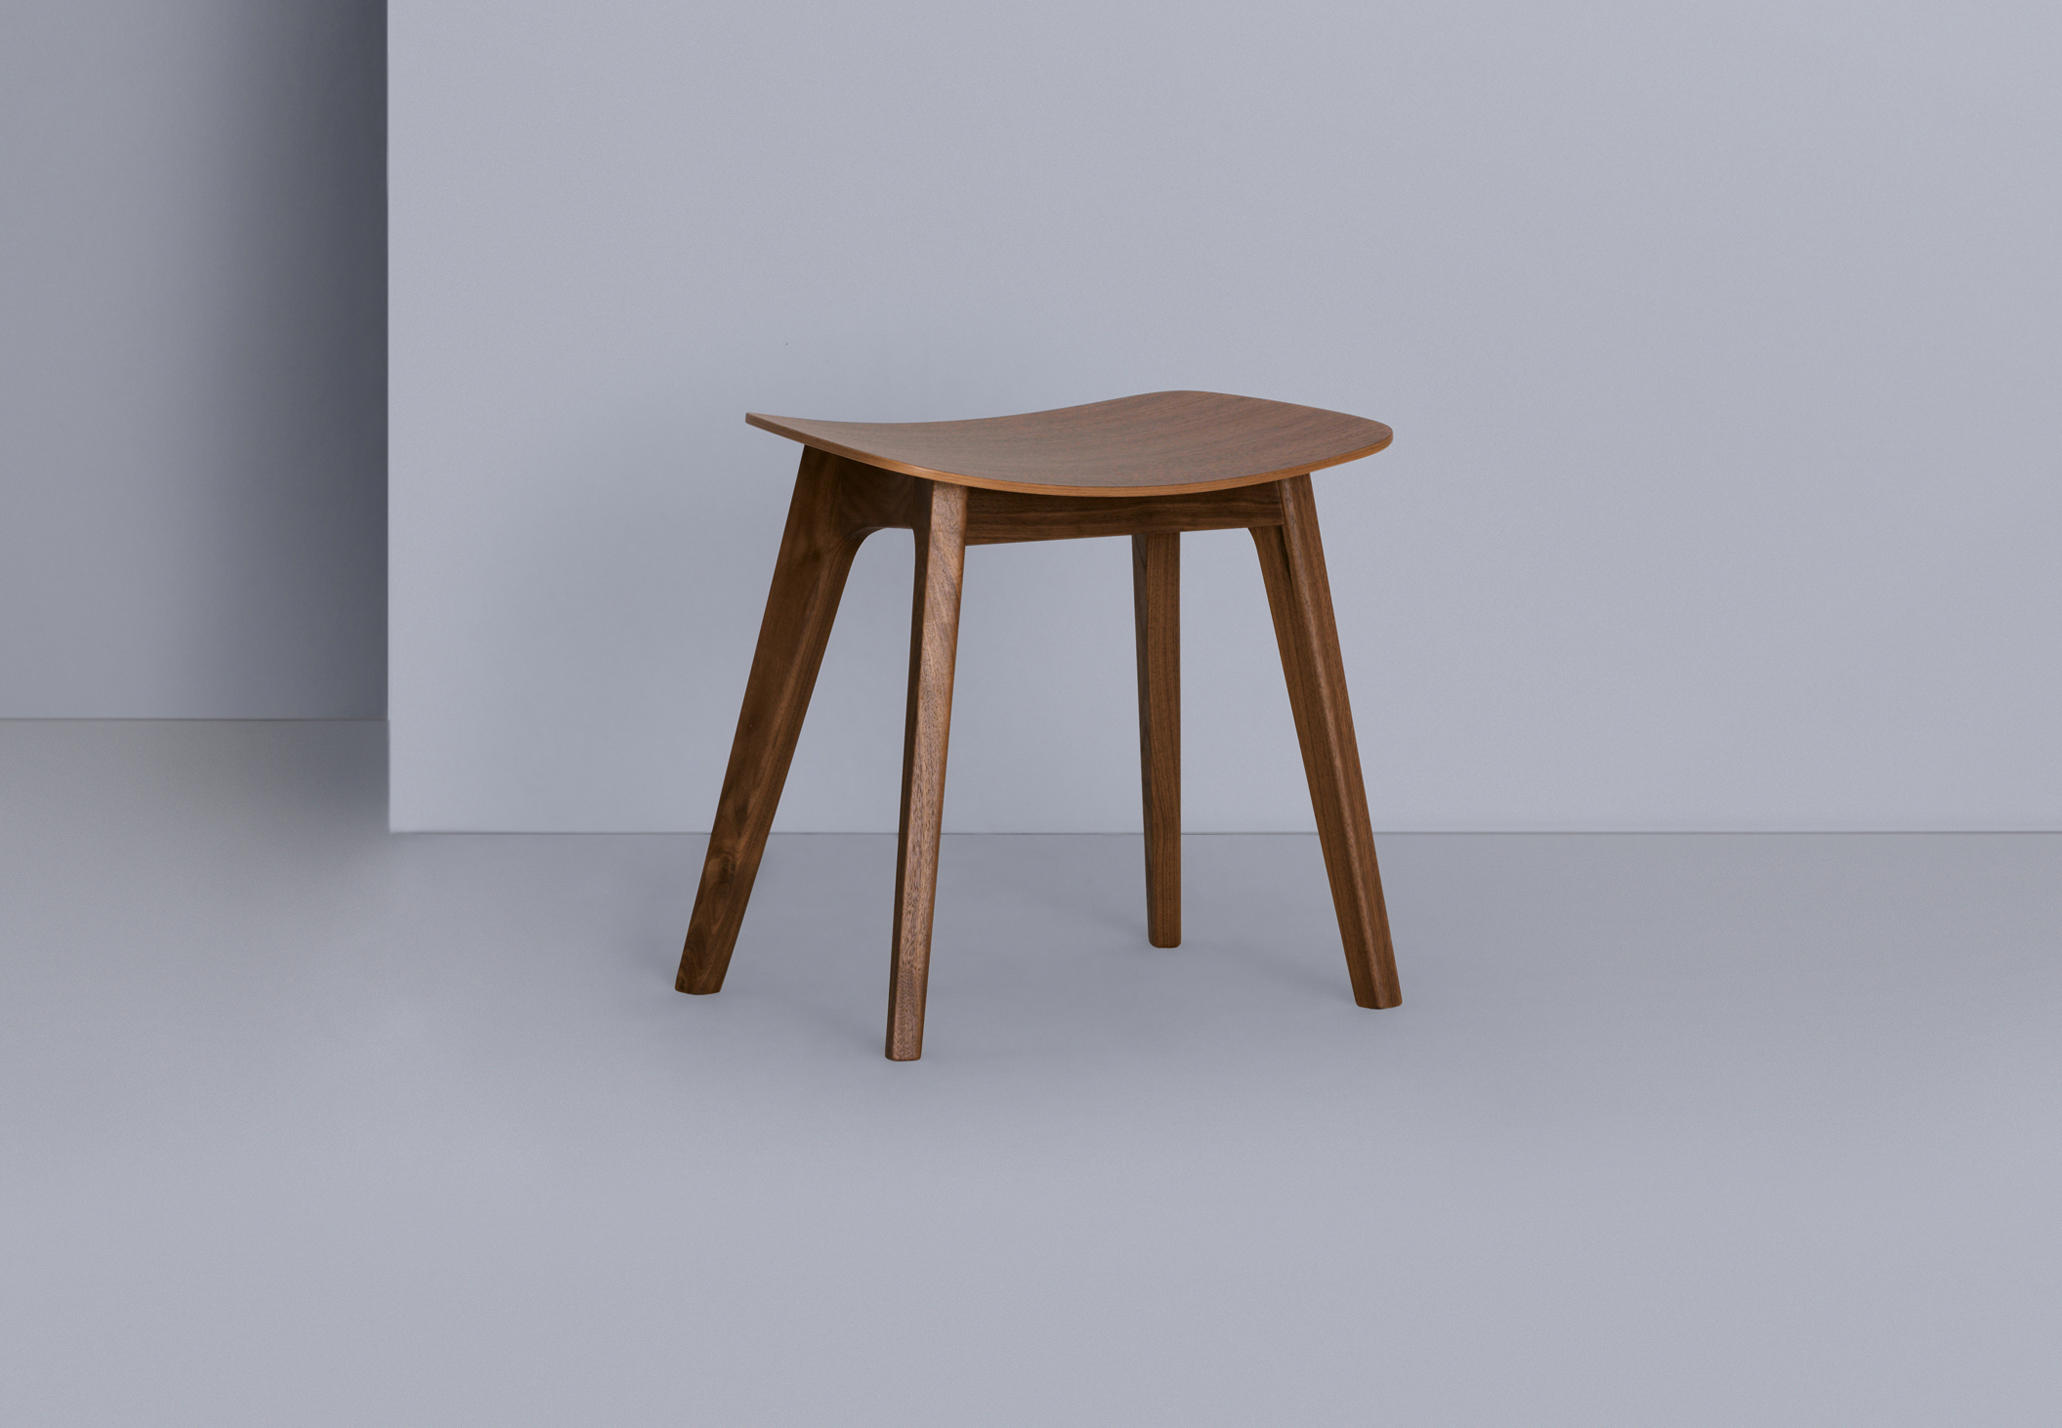 new styles b06ba 5f282 MORPH STOOL - Stools from Zeitraum | Architonic